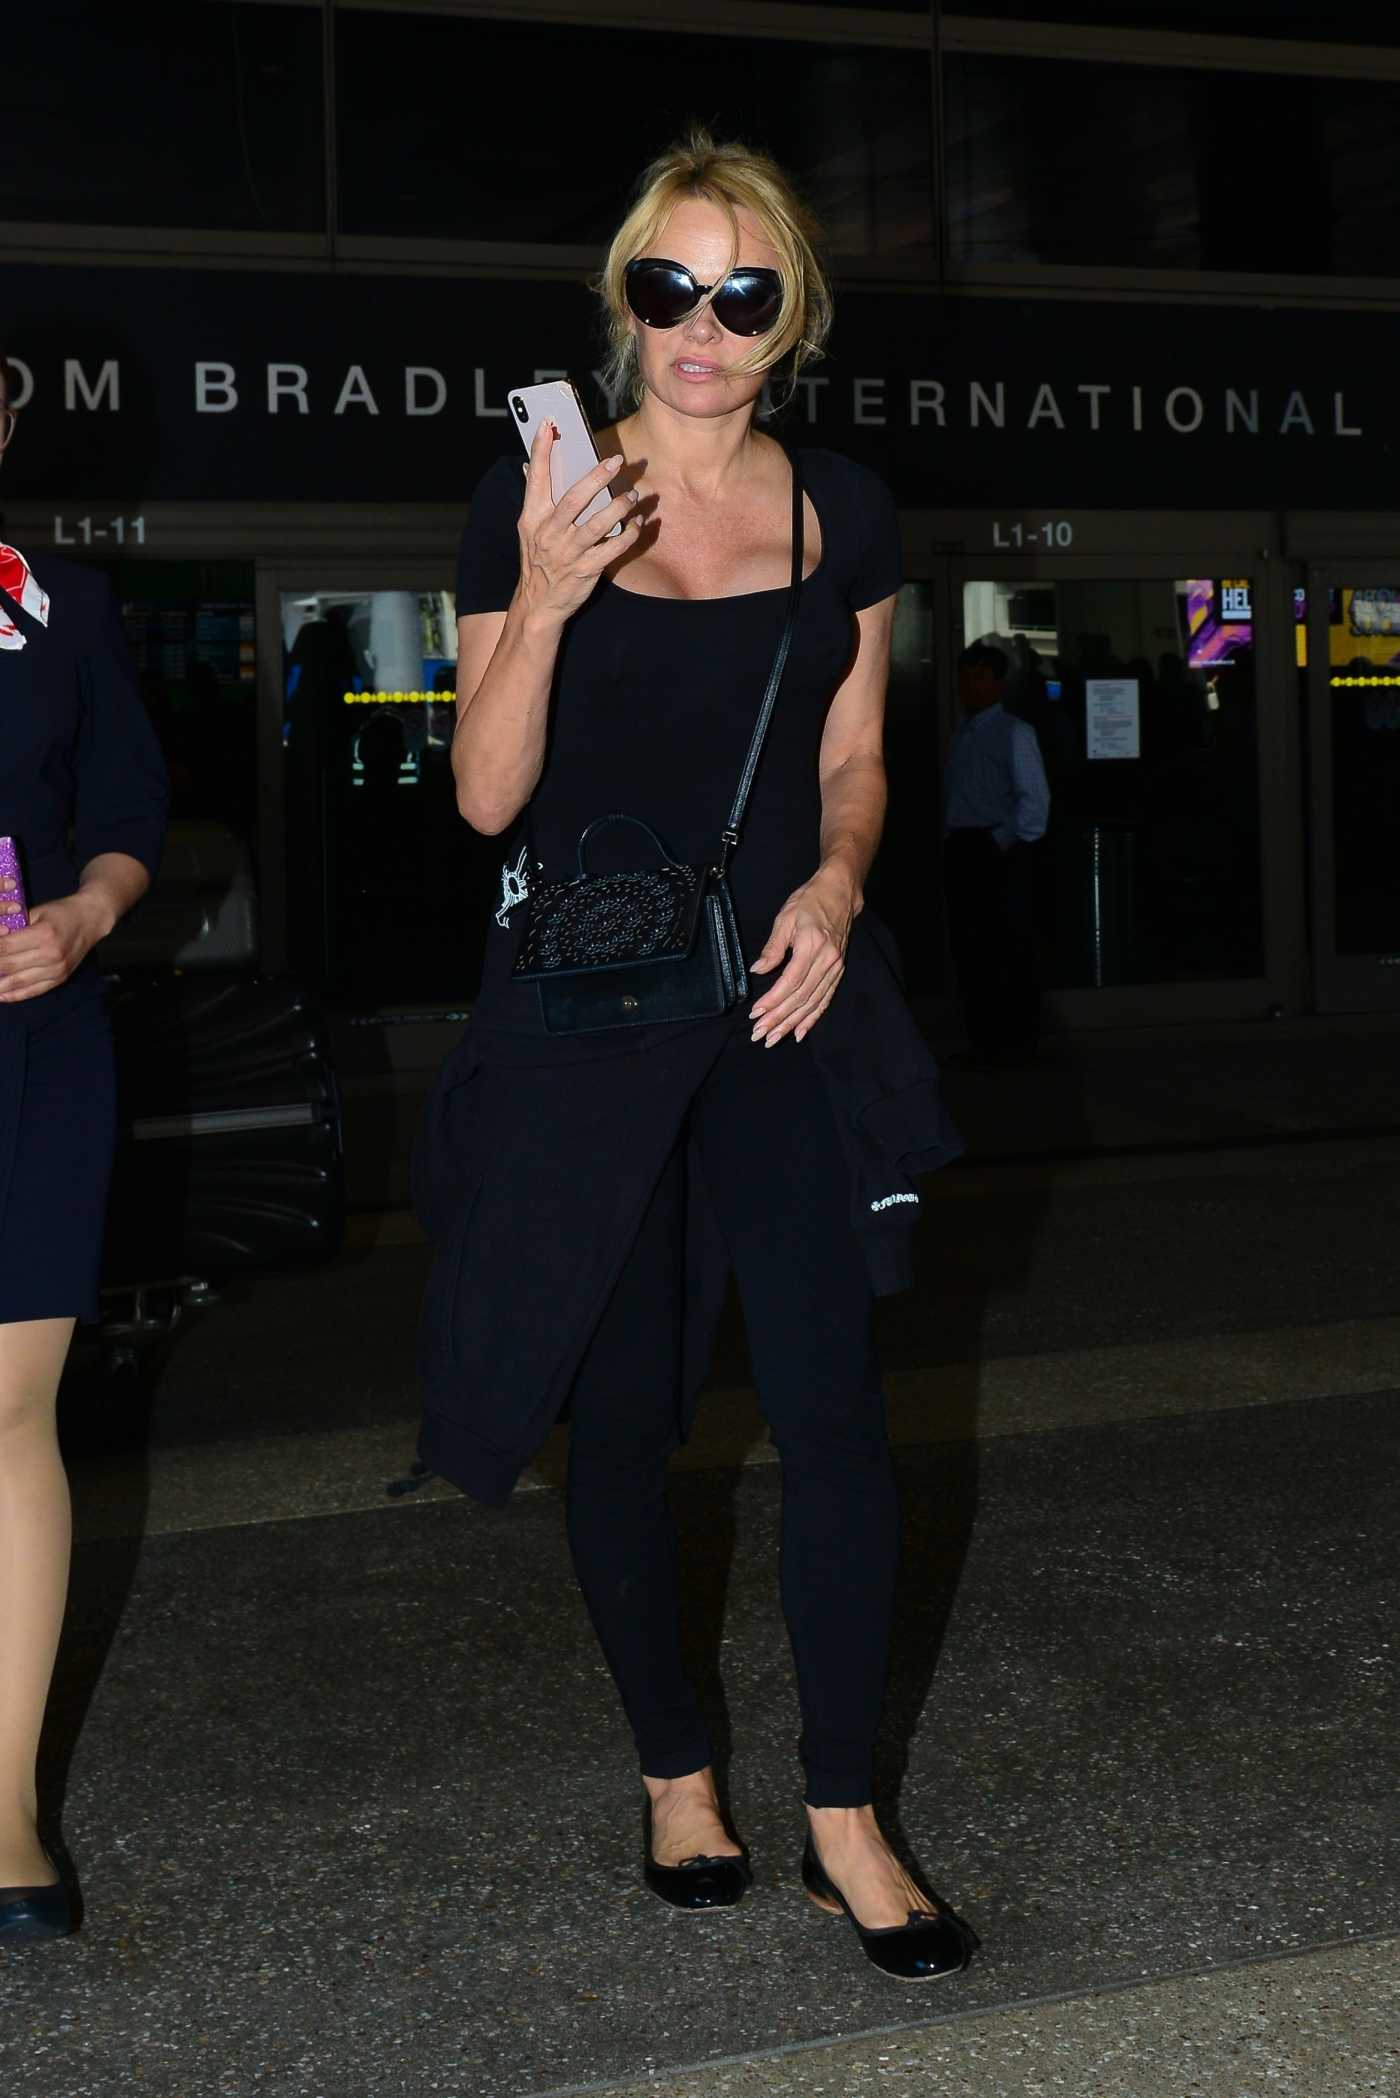 Pamela Anderson Arrives at LAX Airport in LA 06/05/2019